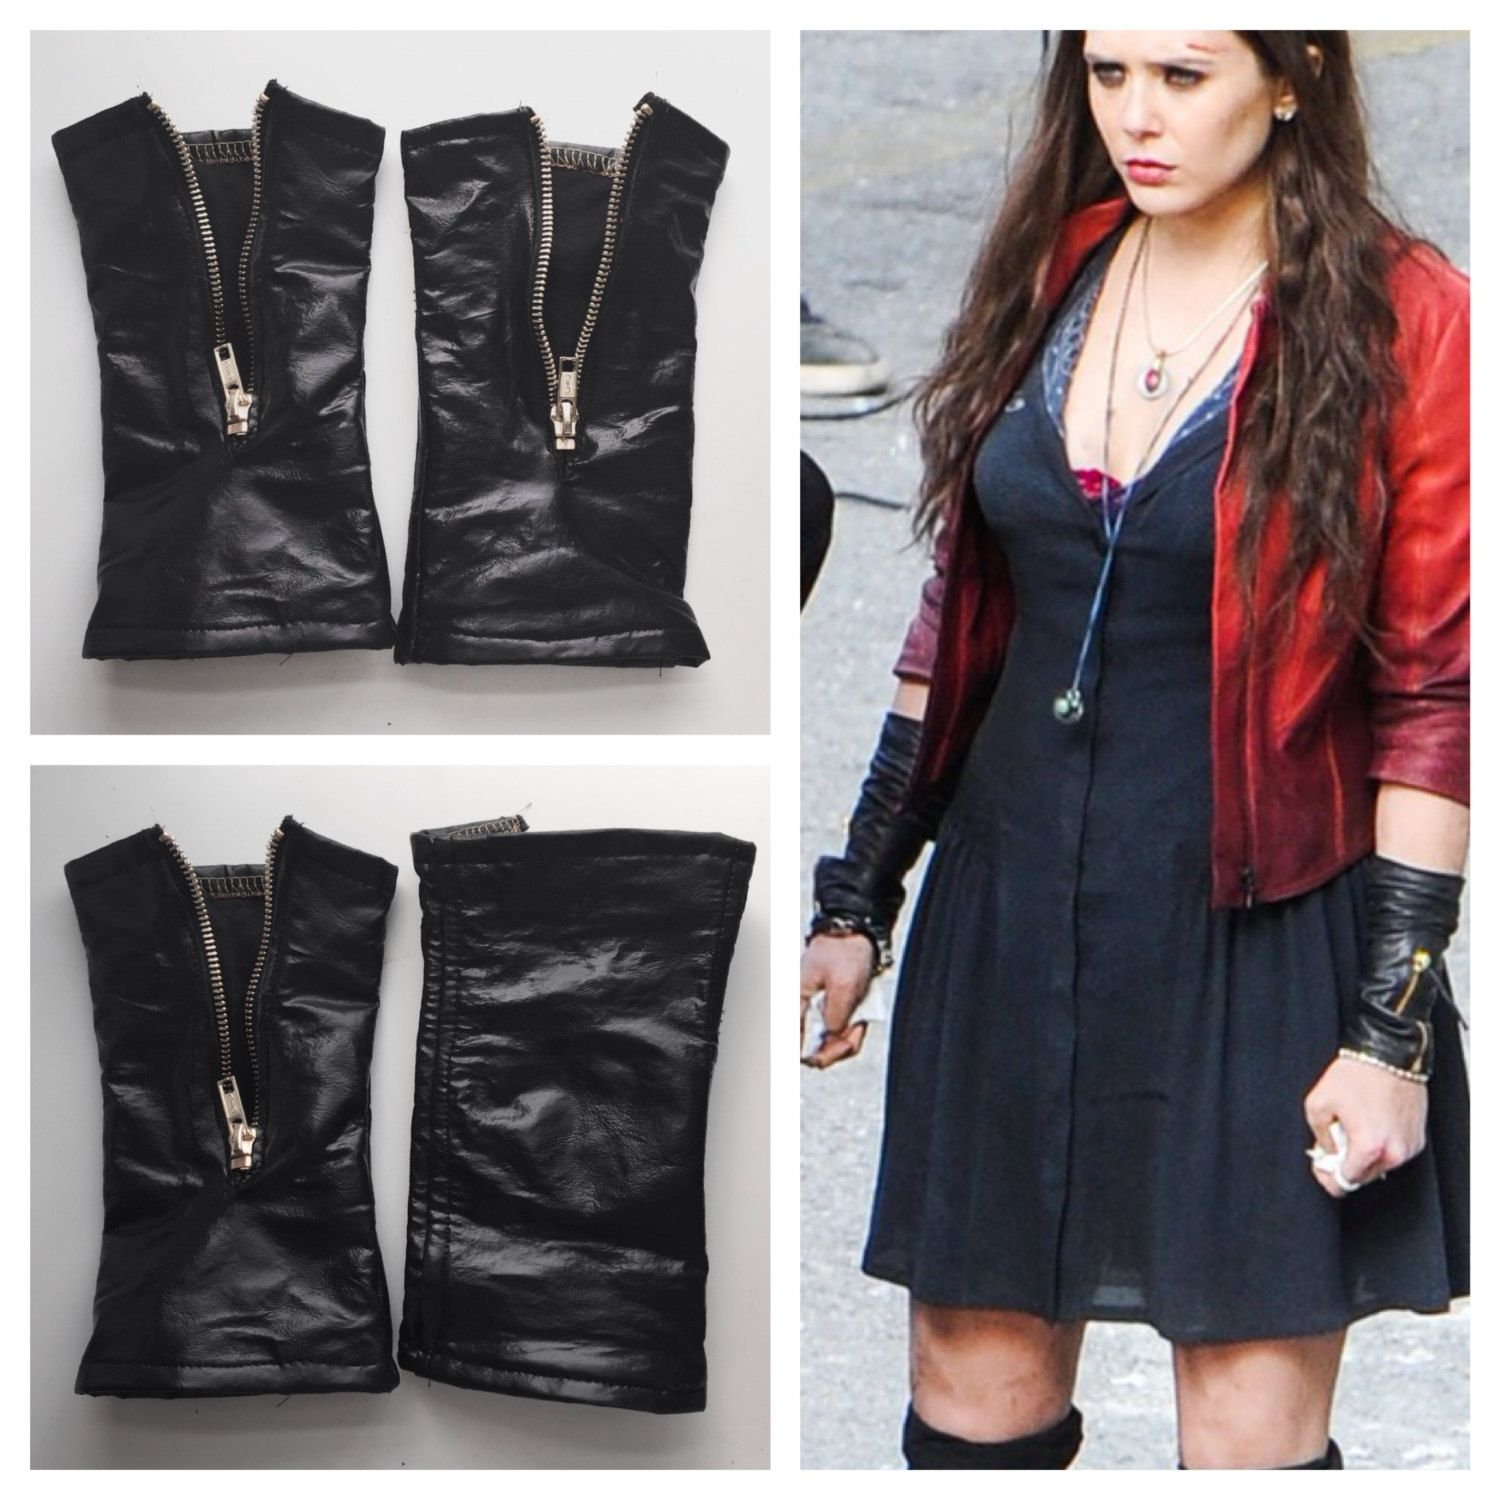 Avengers: Age of Ultron Scarlet Witch costume detail | Cosplay ...